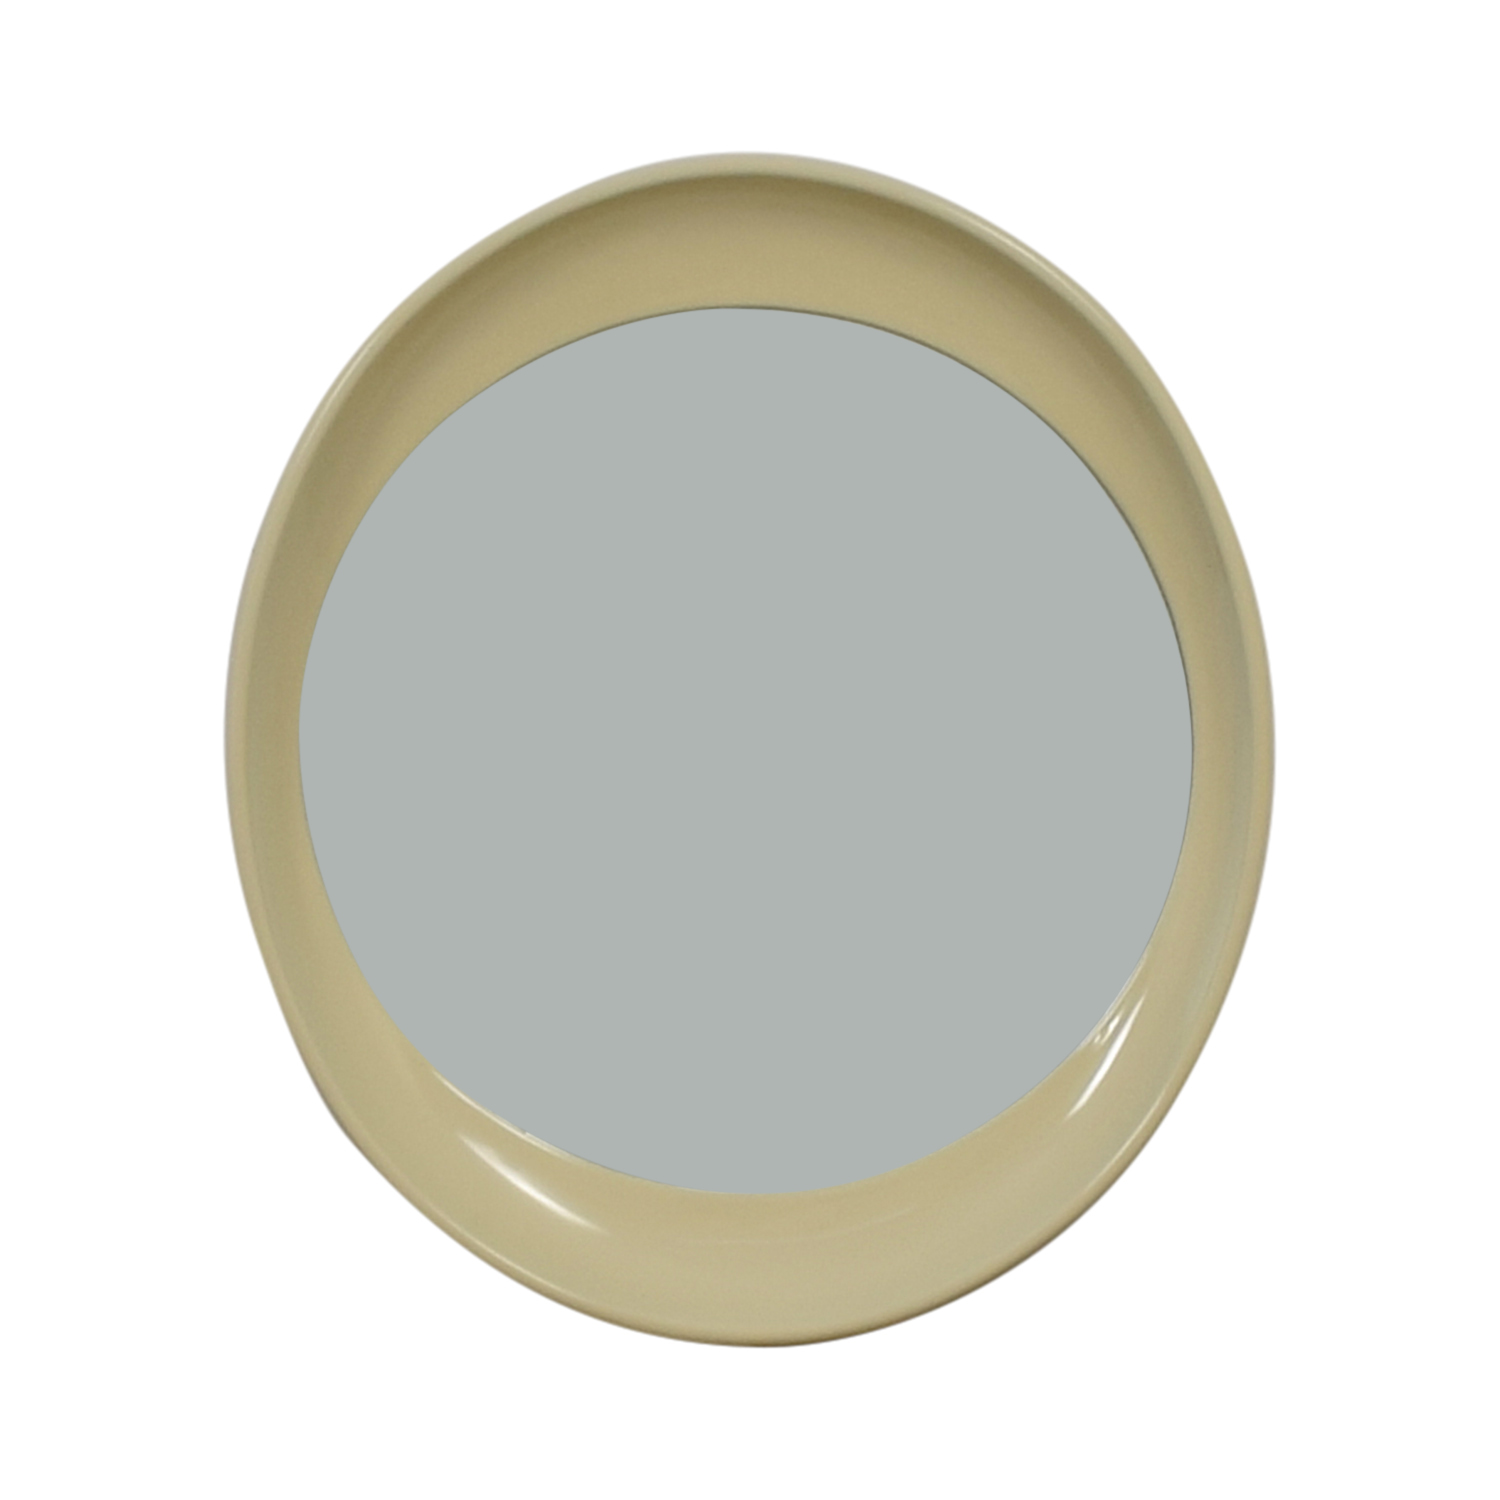 Vanilla Framed Round Mirror for sale